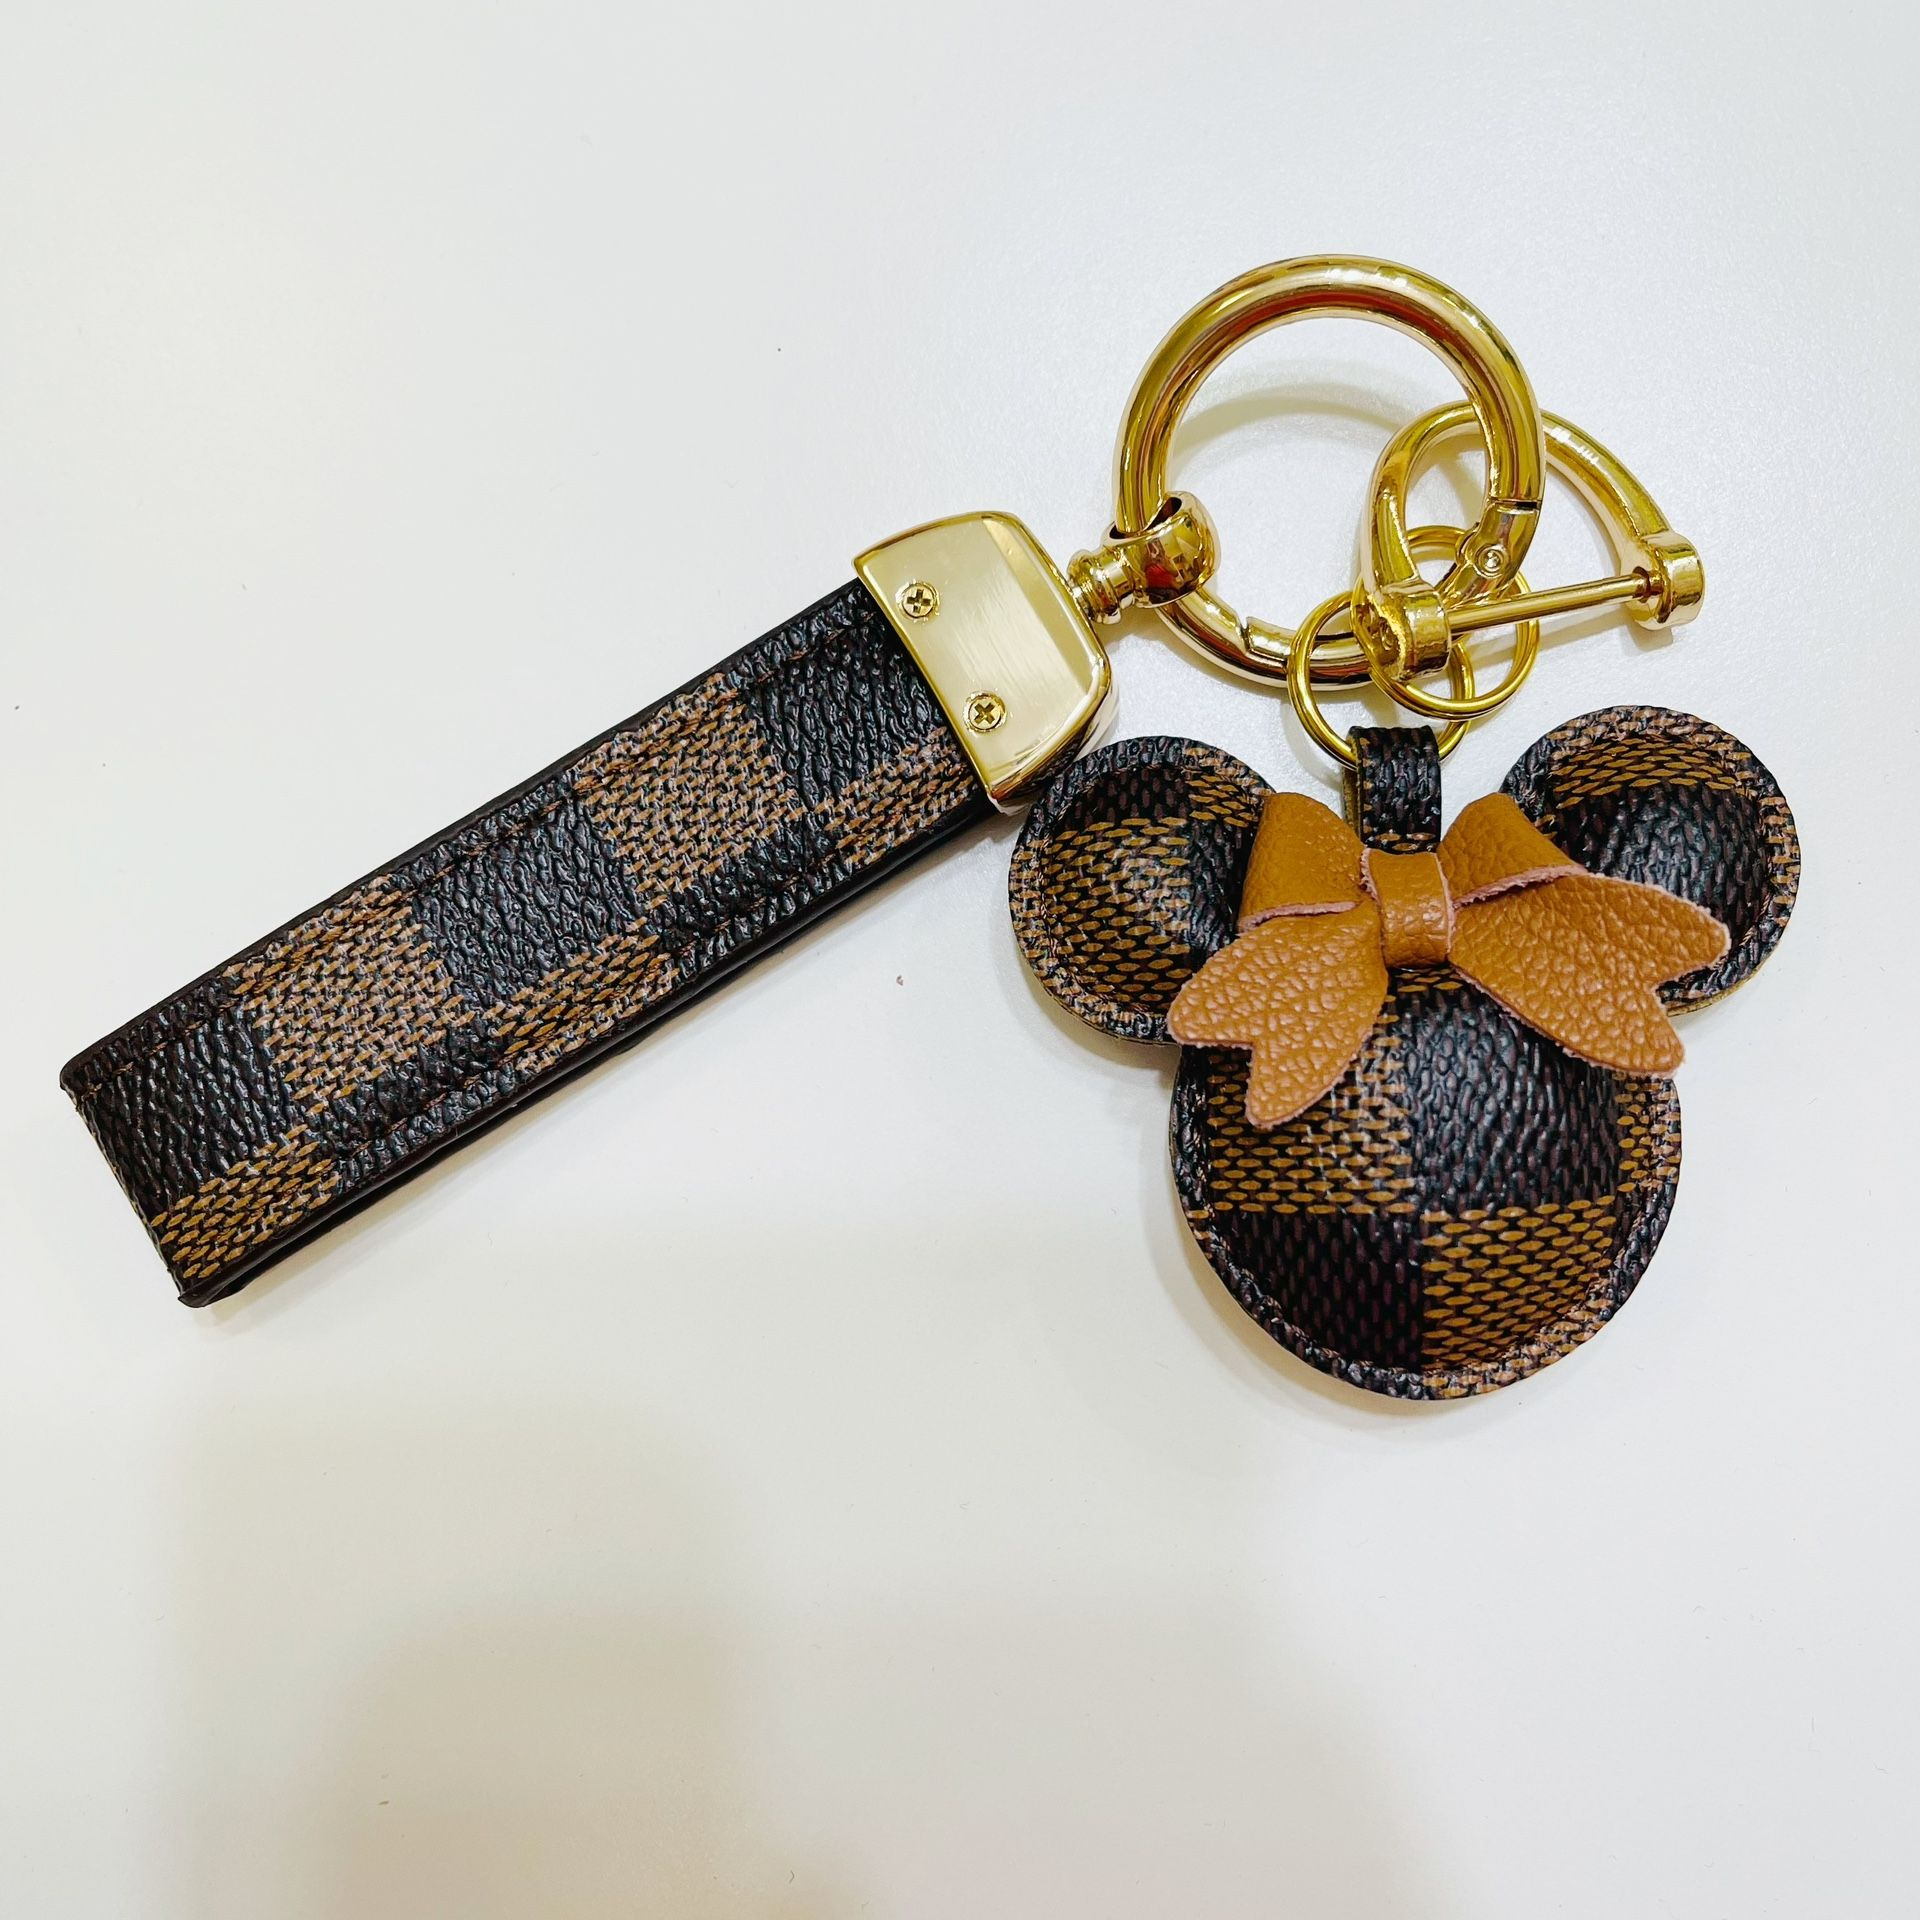 Cute Luxury Leather Keychain for Car and Handbag Backpack